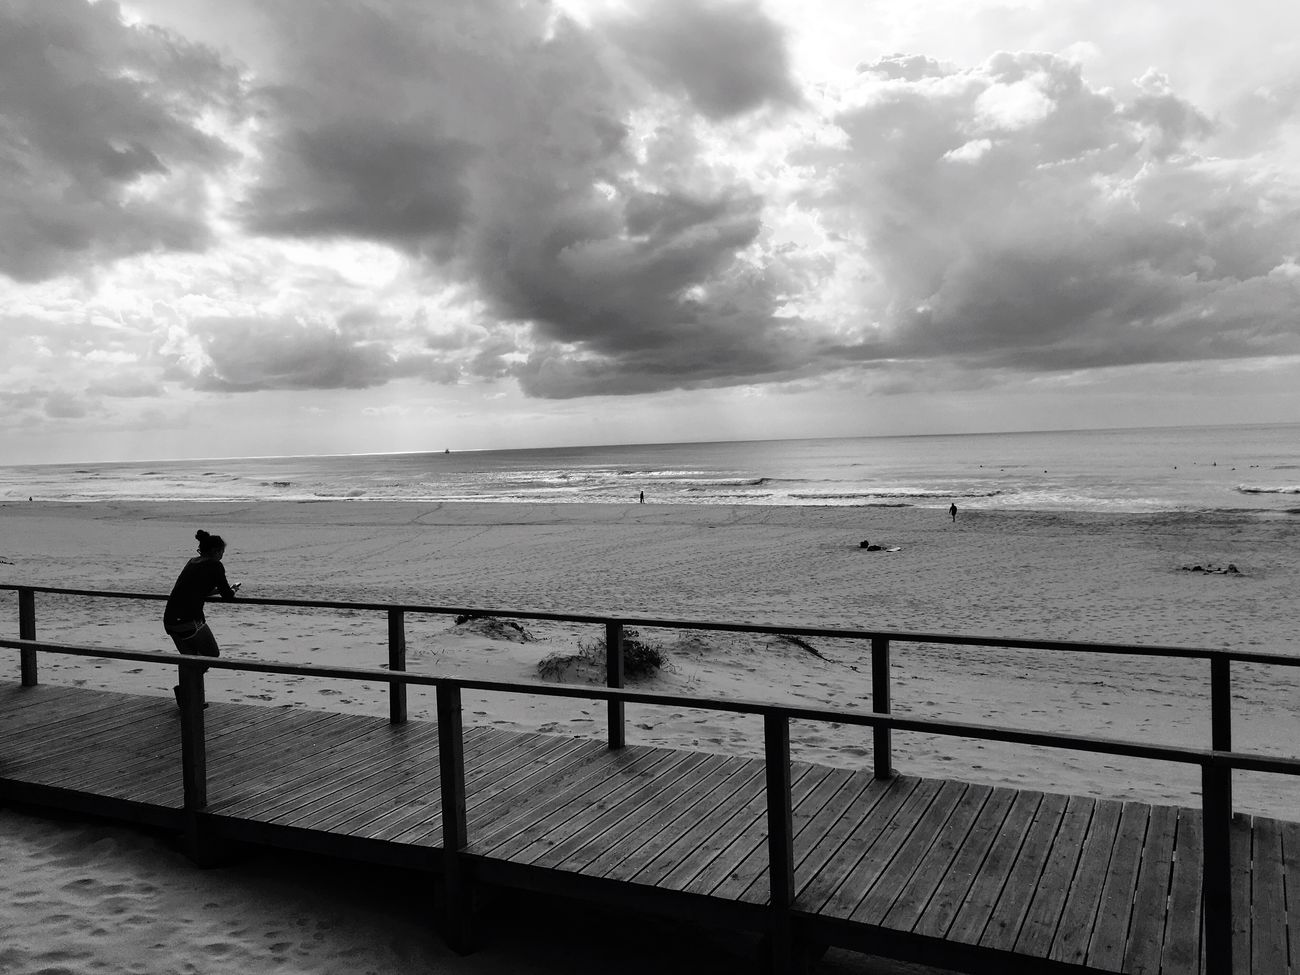 Beach watching Tranquility Leisure Activity Shore Work Break Tranquility Beauty In Nature Relaxing Moments Sunny Afternoon Cloudy Sea And Sky Seaside Seashore Autumn Lights Black & White Nature